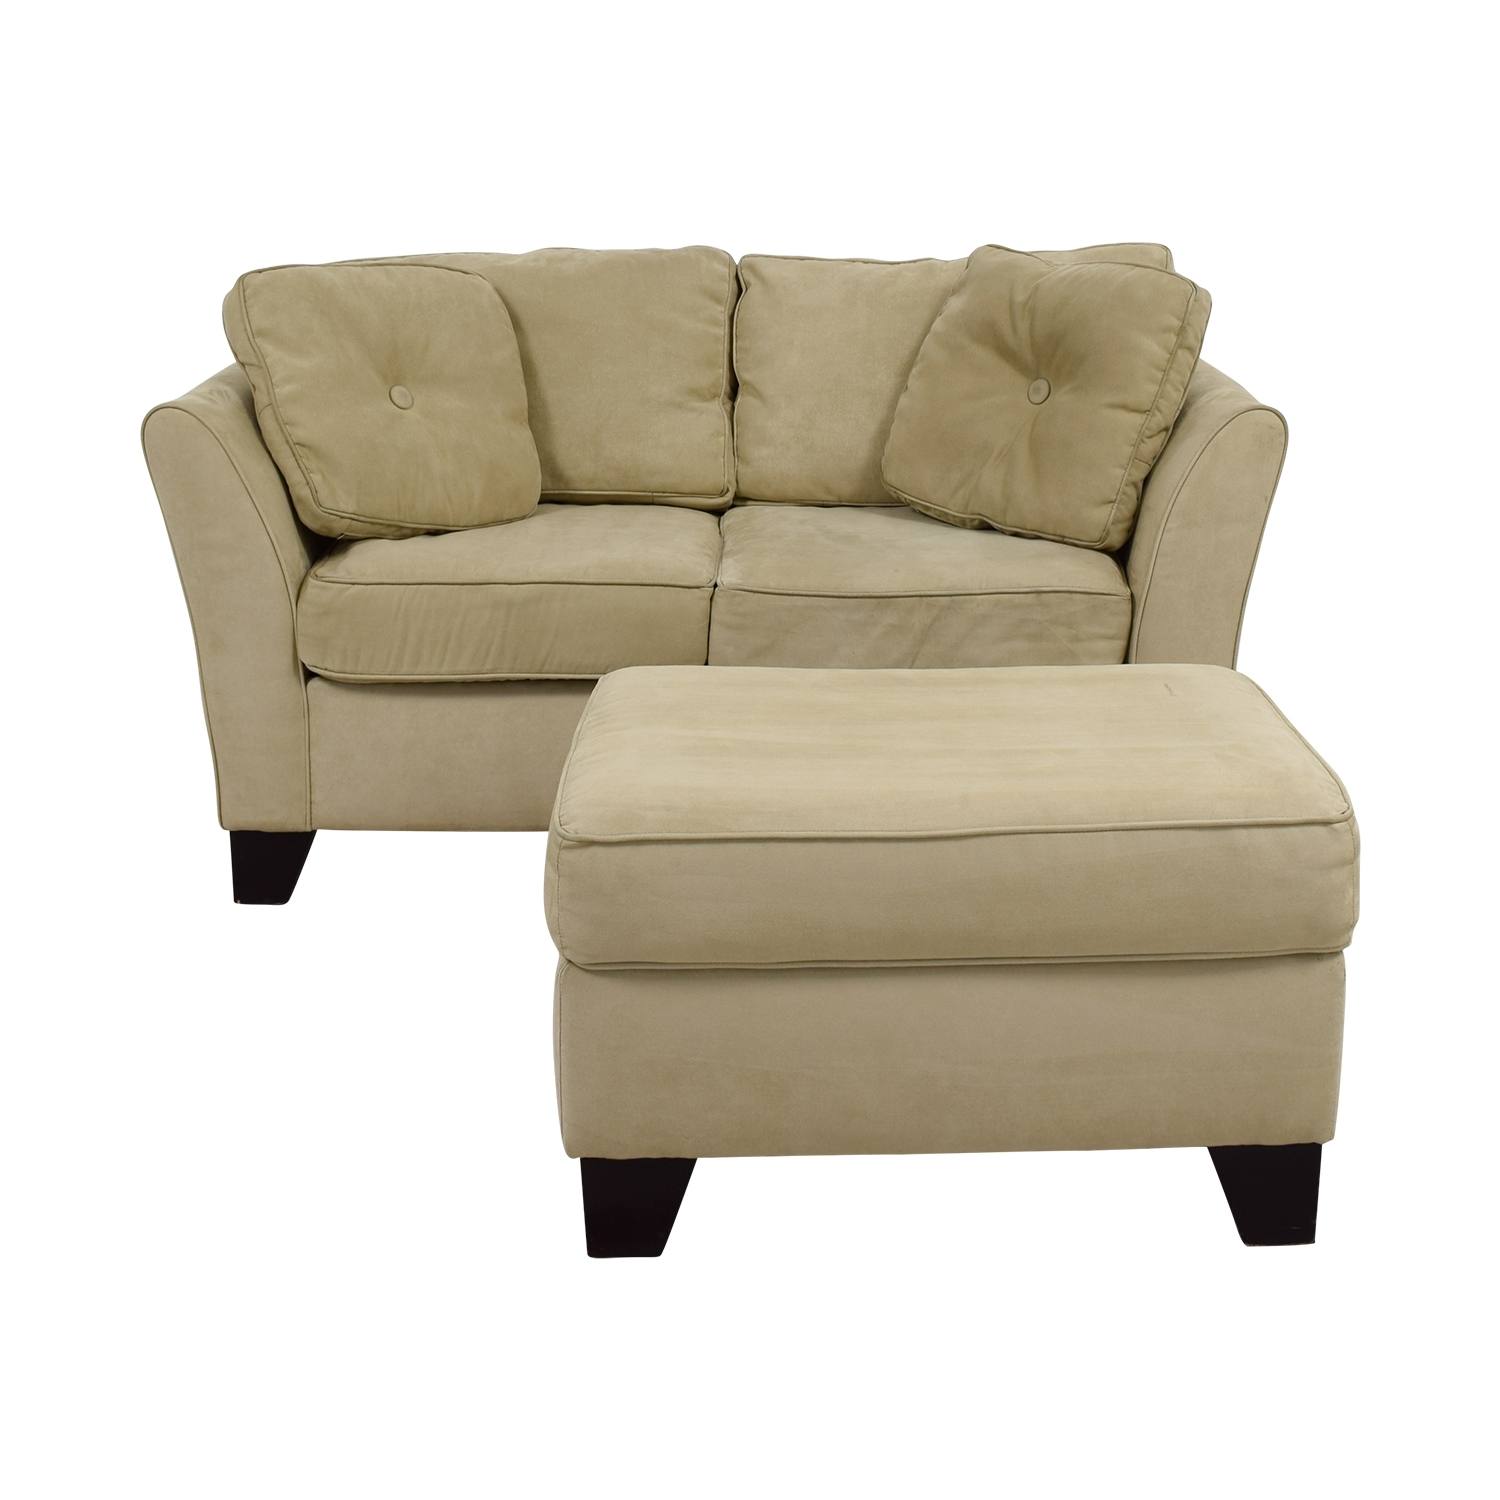 86% Off - Macy's Macy's Tan Loveseat With Ottoman / Sofas with Loveseats With Ottoman (Image 6 of 15)